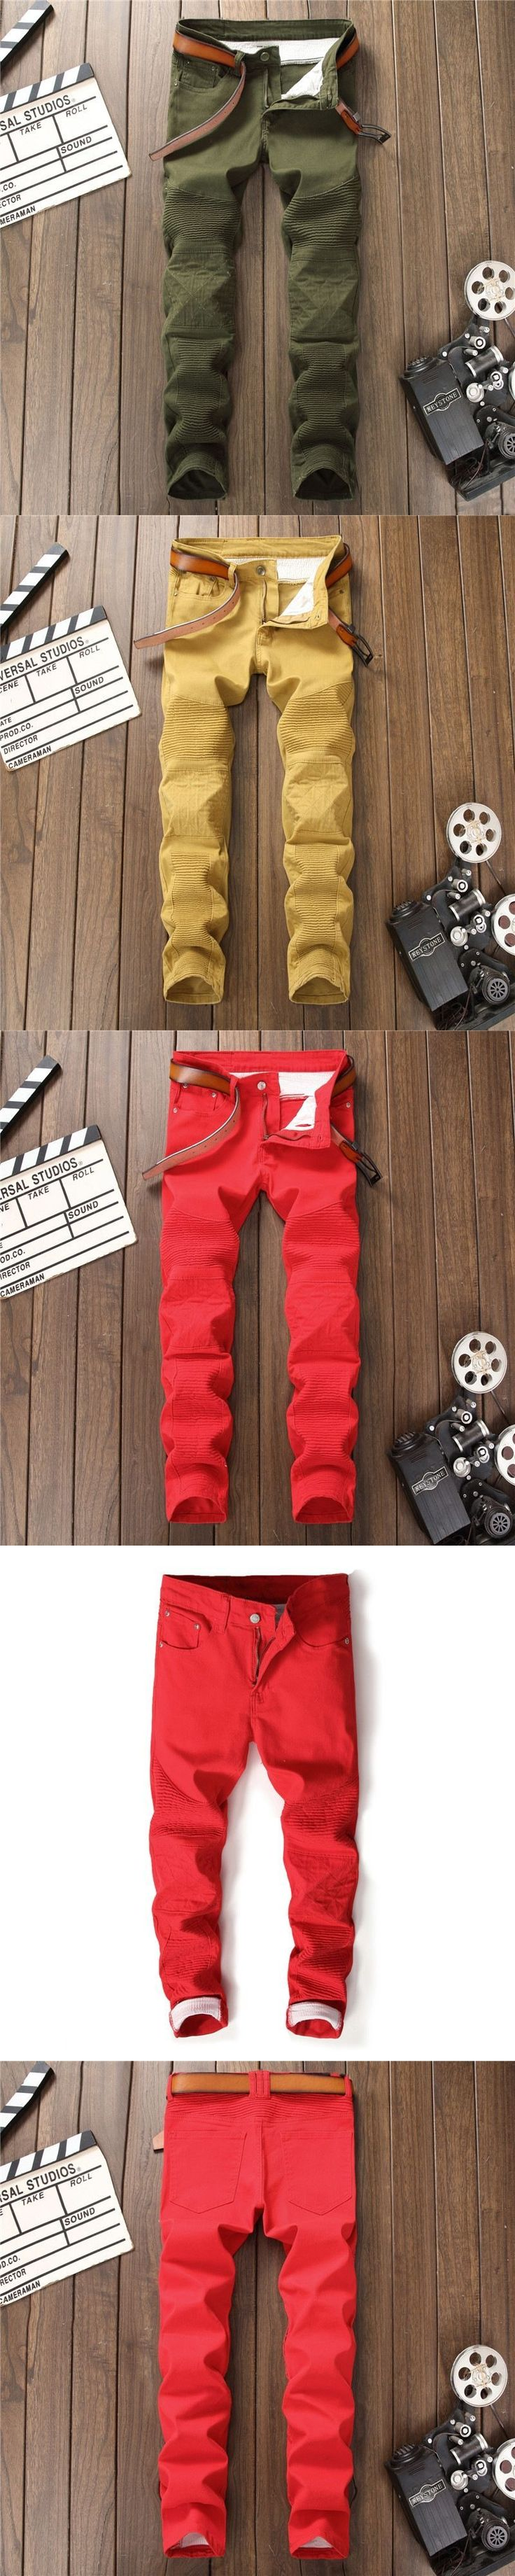 European American style 2018 luxury quality new mens jeans Pockets slim casual Denim jeans pants for men red army green  khaki